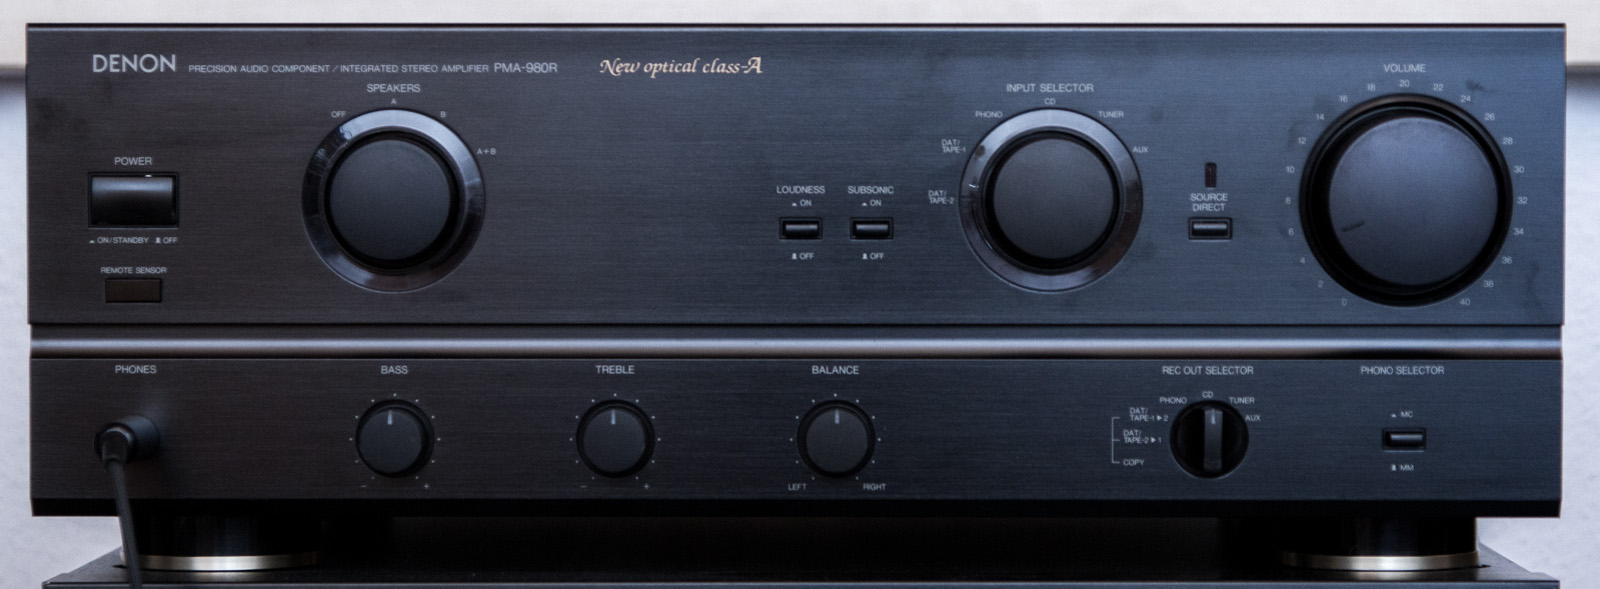 If it wasn't for Revox and their excellent B200 series, it is likely that a  PMA-980R would still be my main amp for audio entertainment.